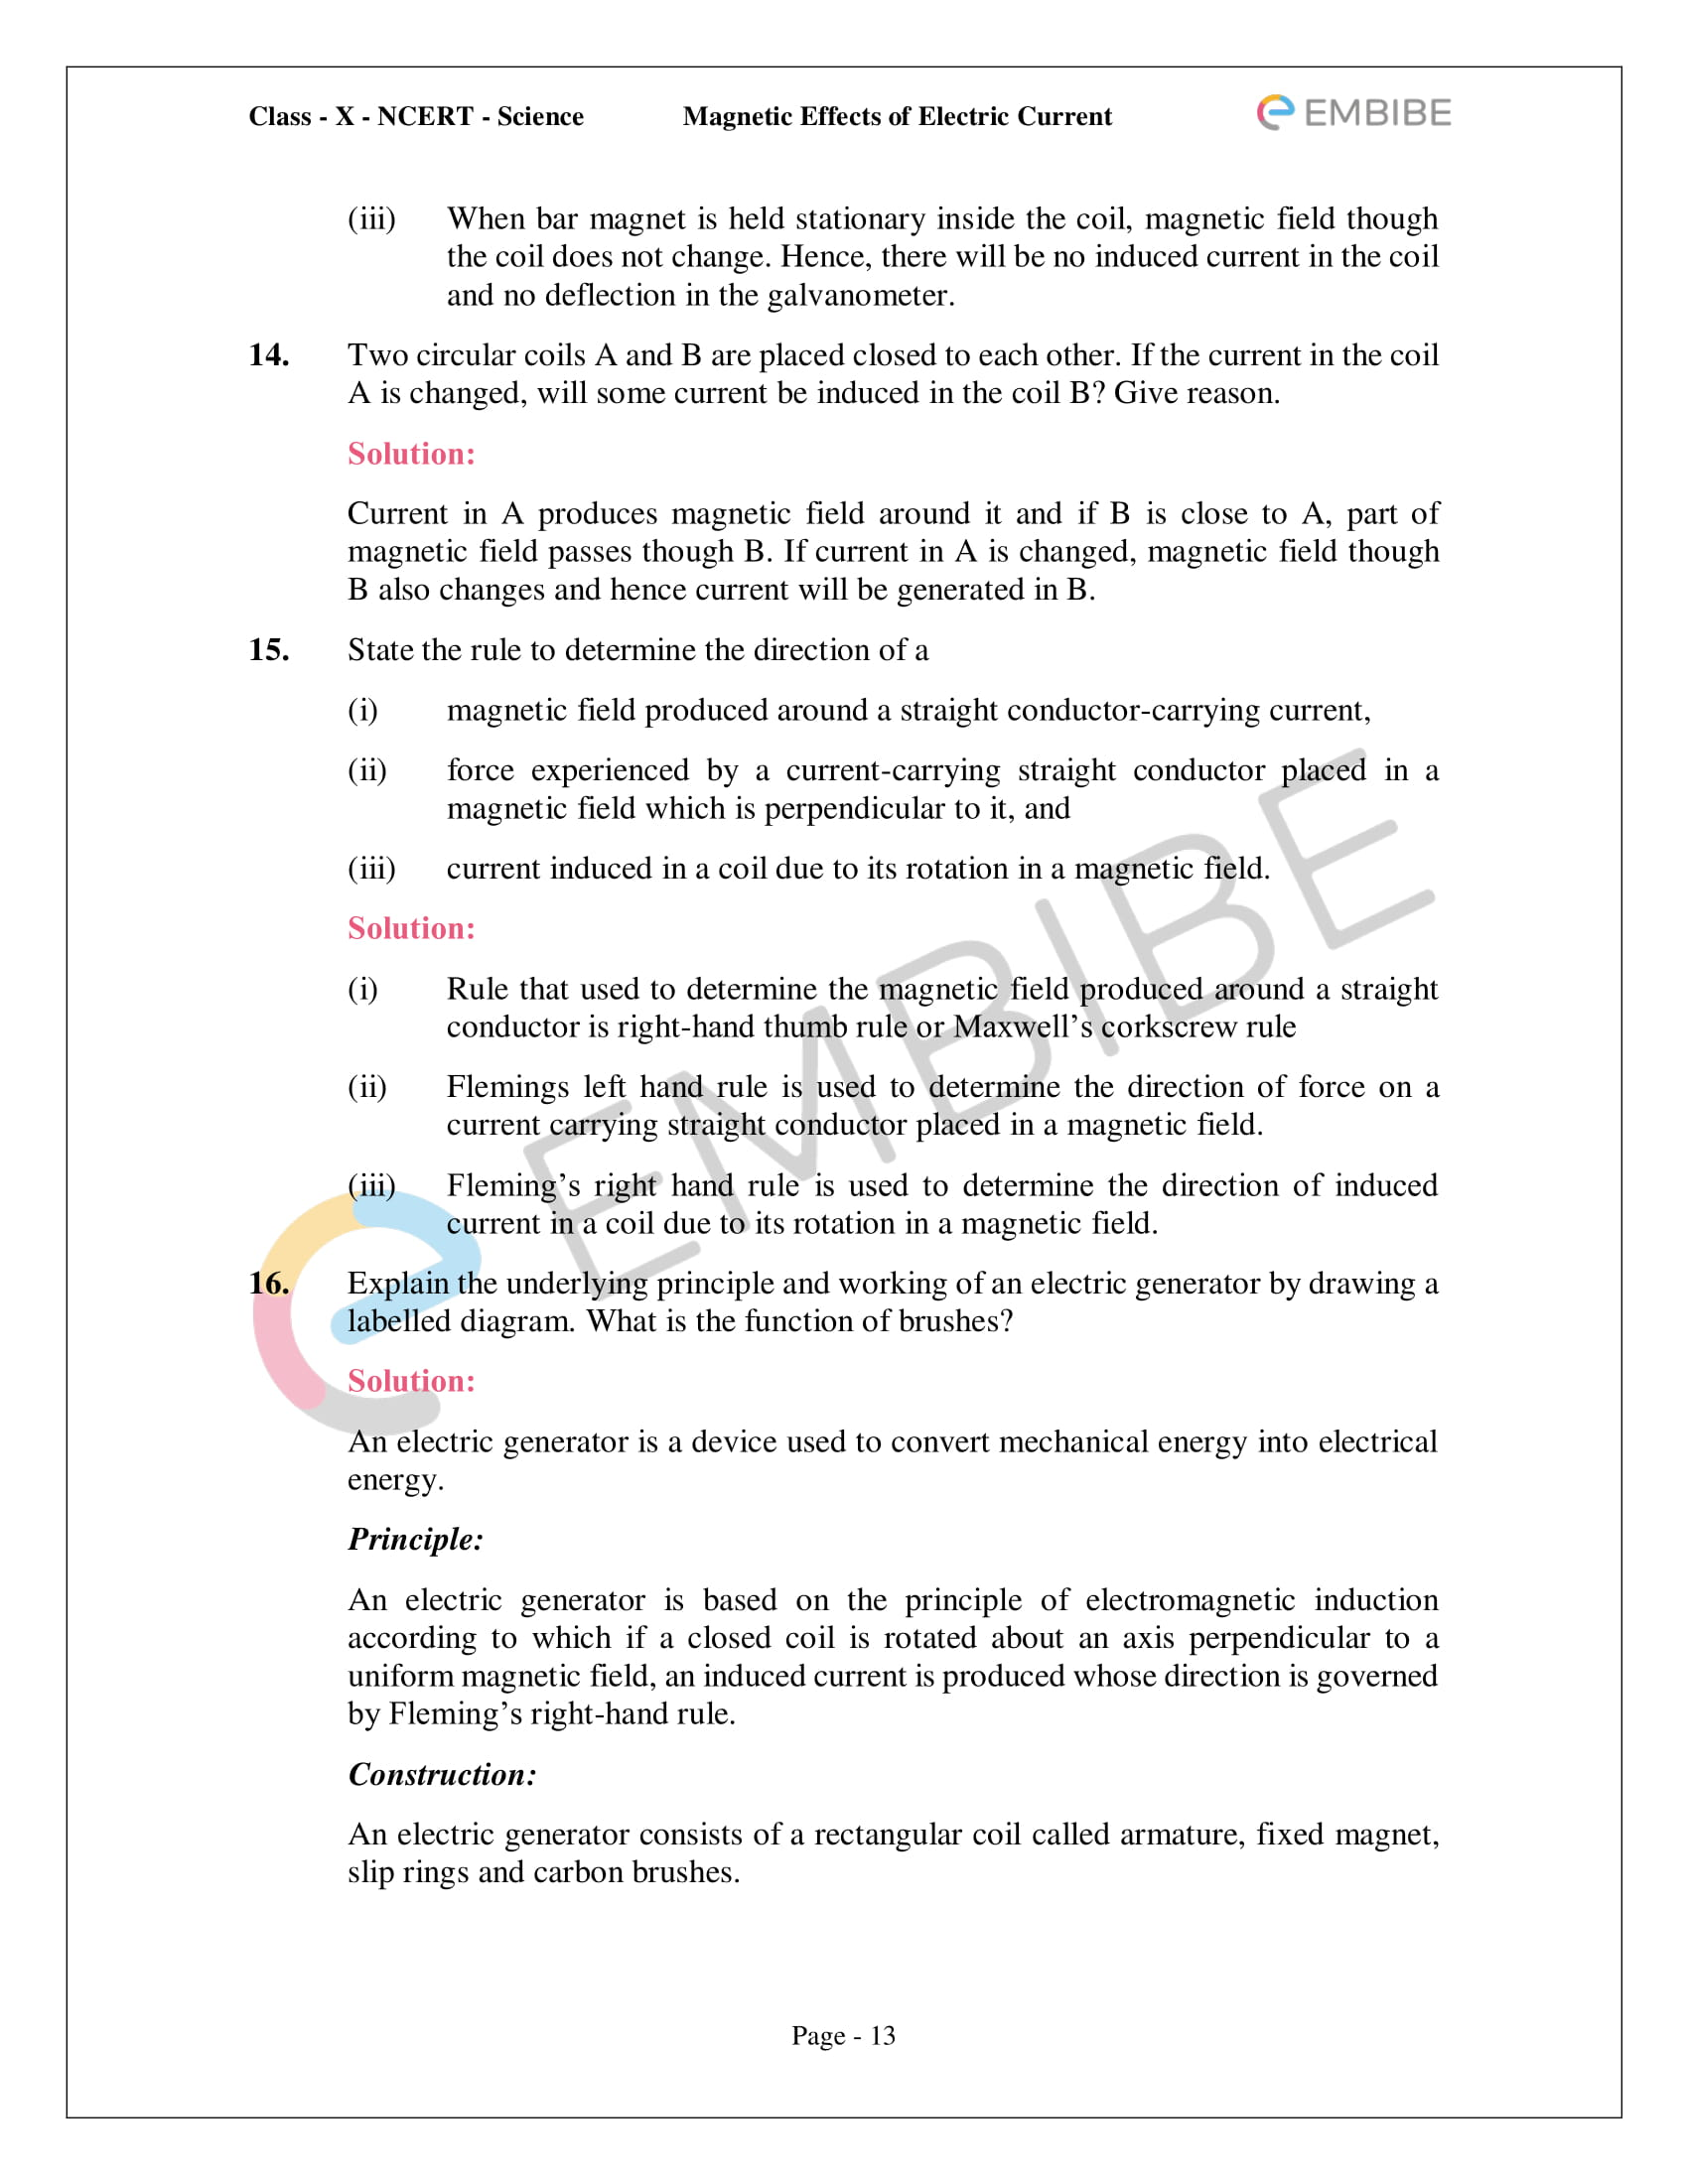 CBSE NCERT Solutions For Class 10 Science Chapter 13 - Magnetic Effects of Electric Current - 13